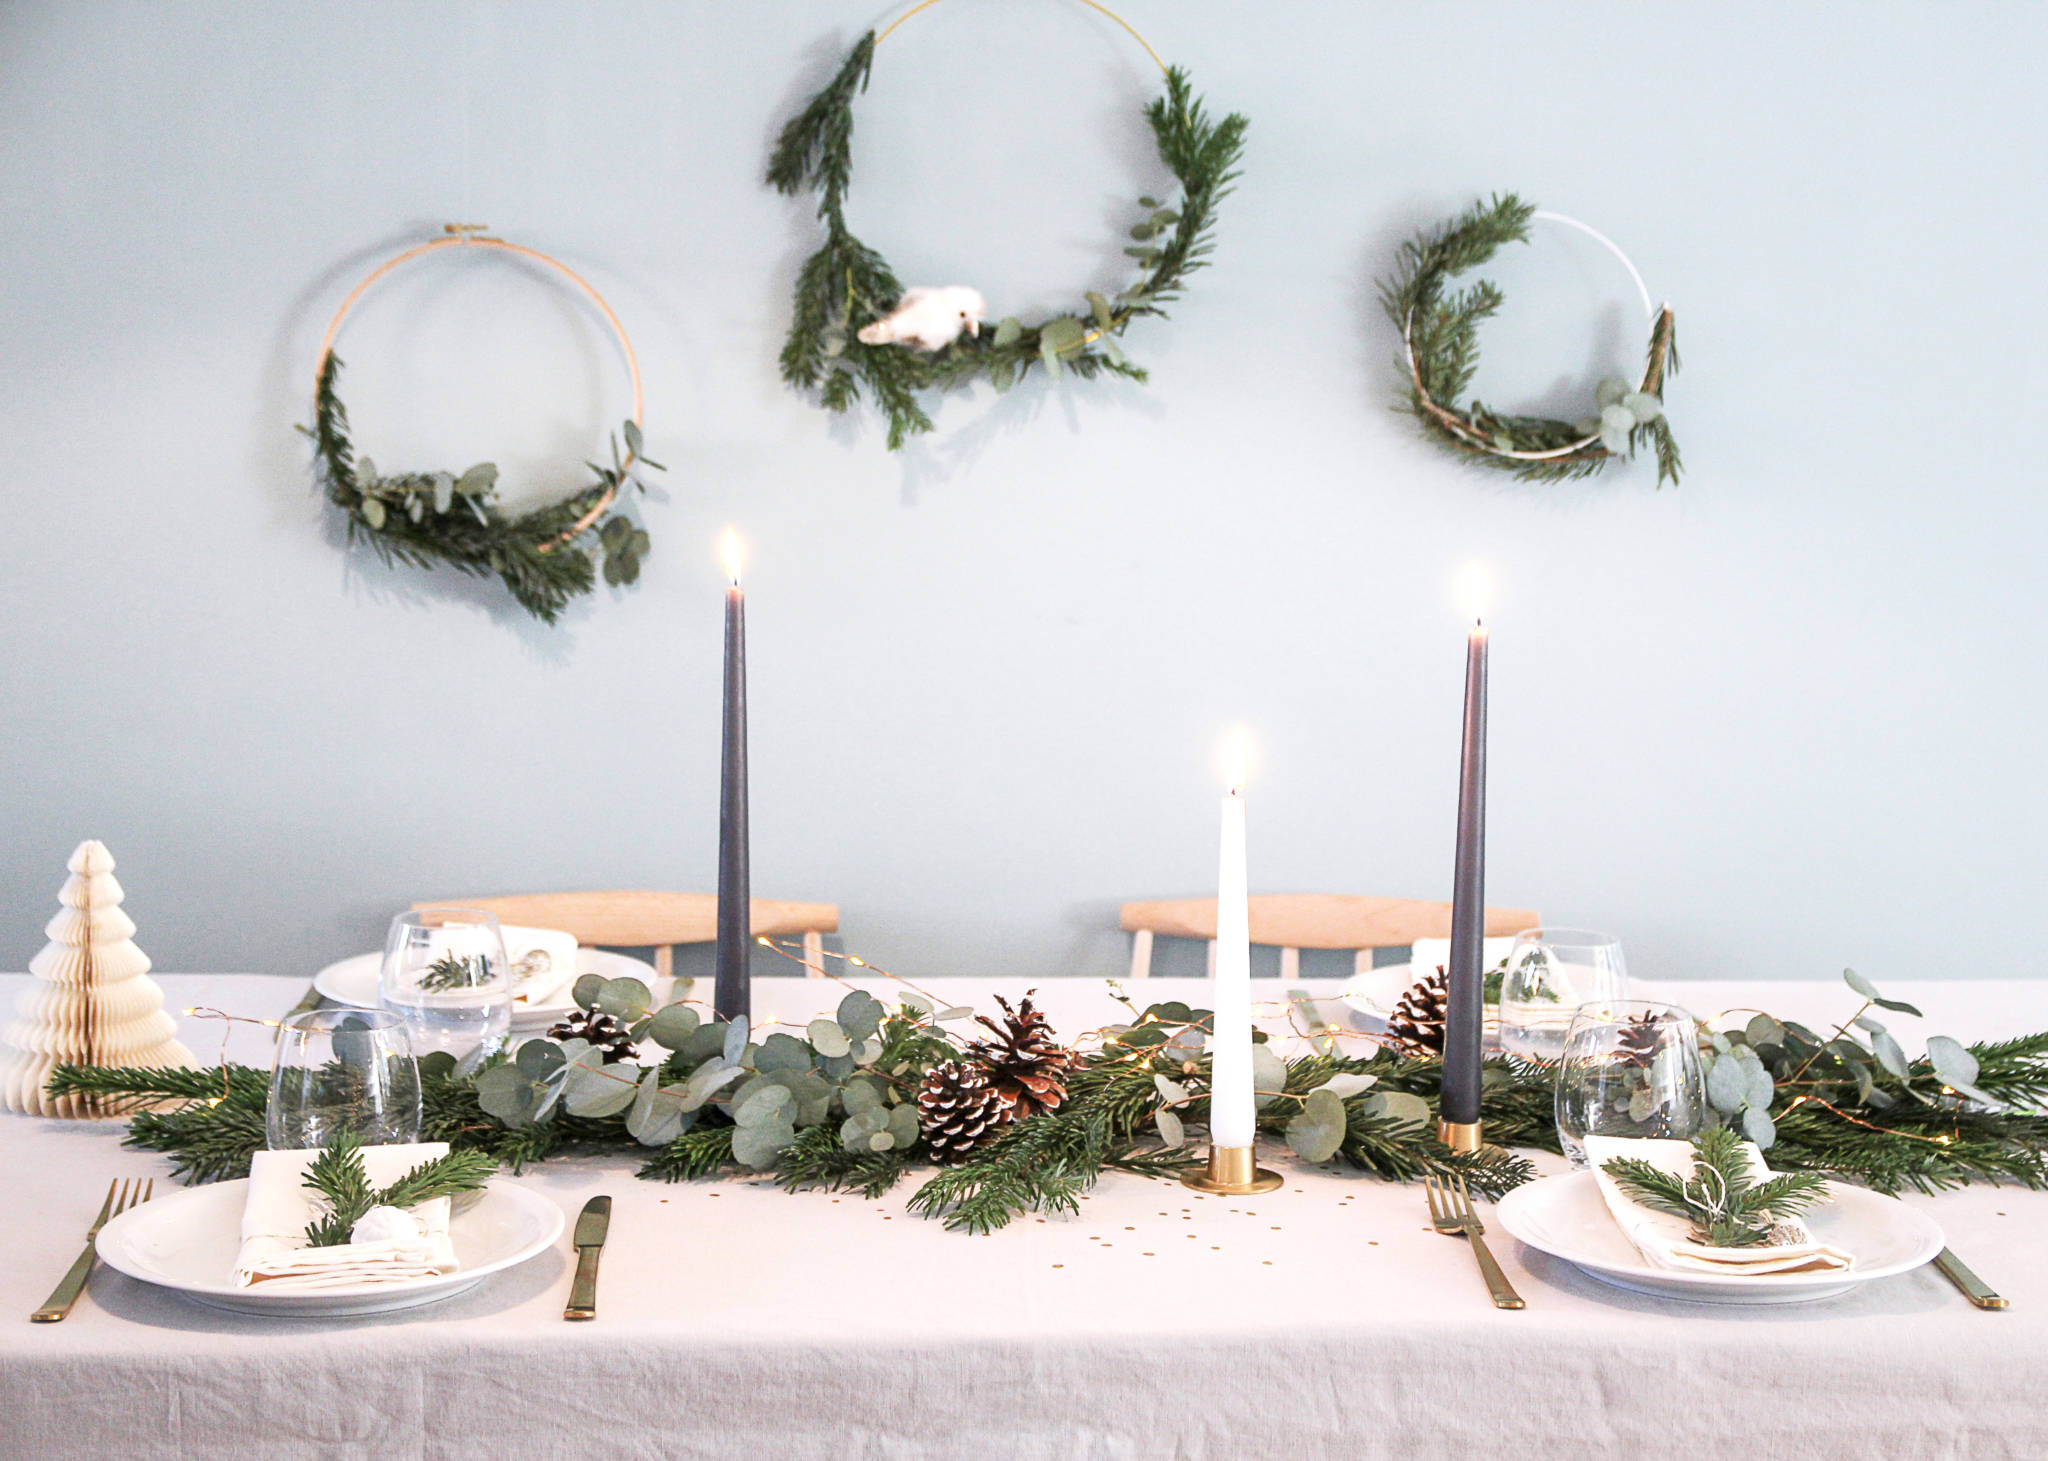 decoration de table de noel inspiration scandinave